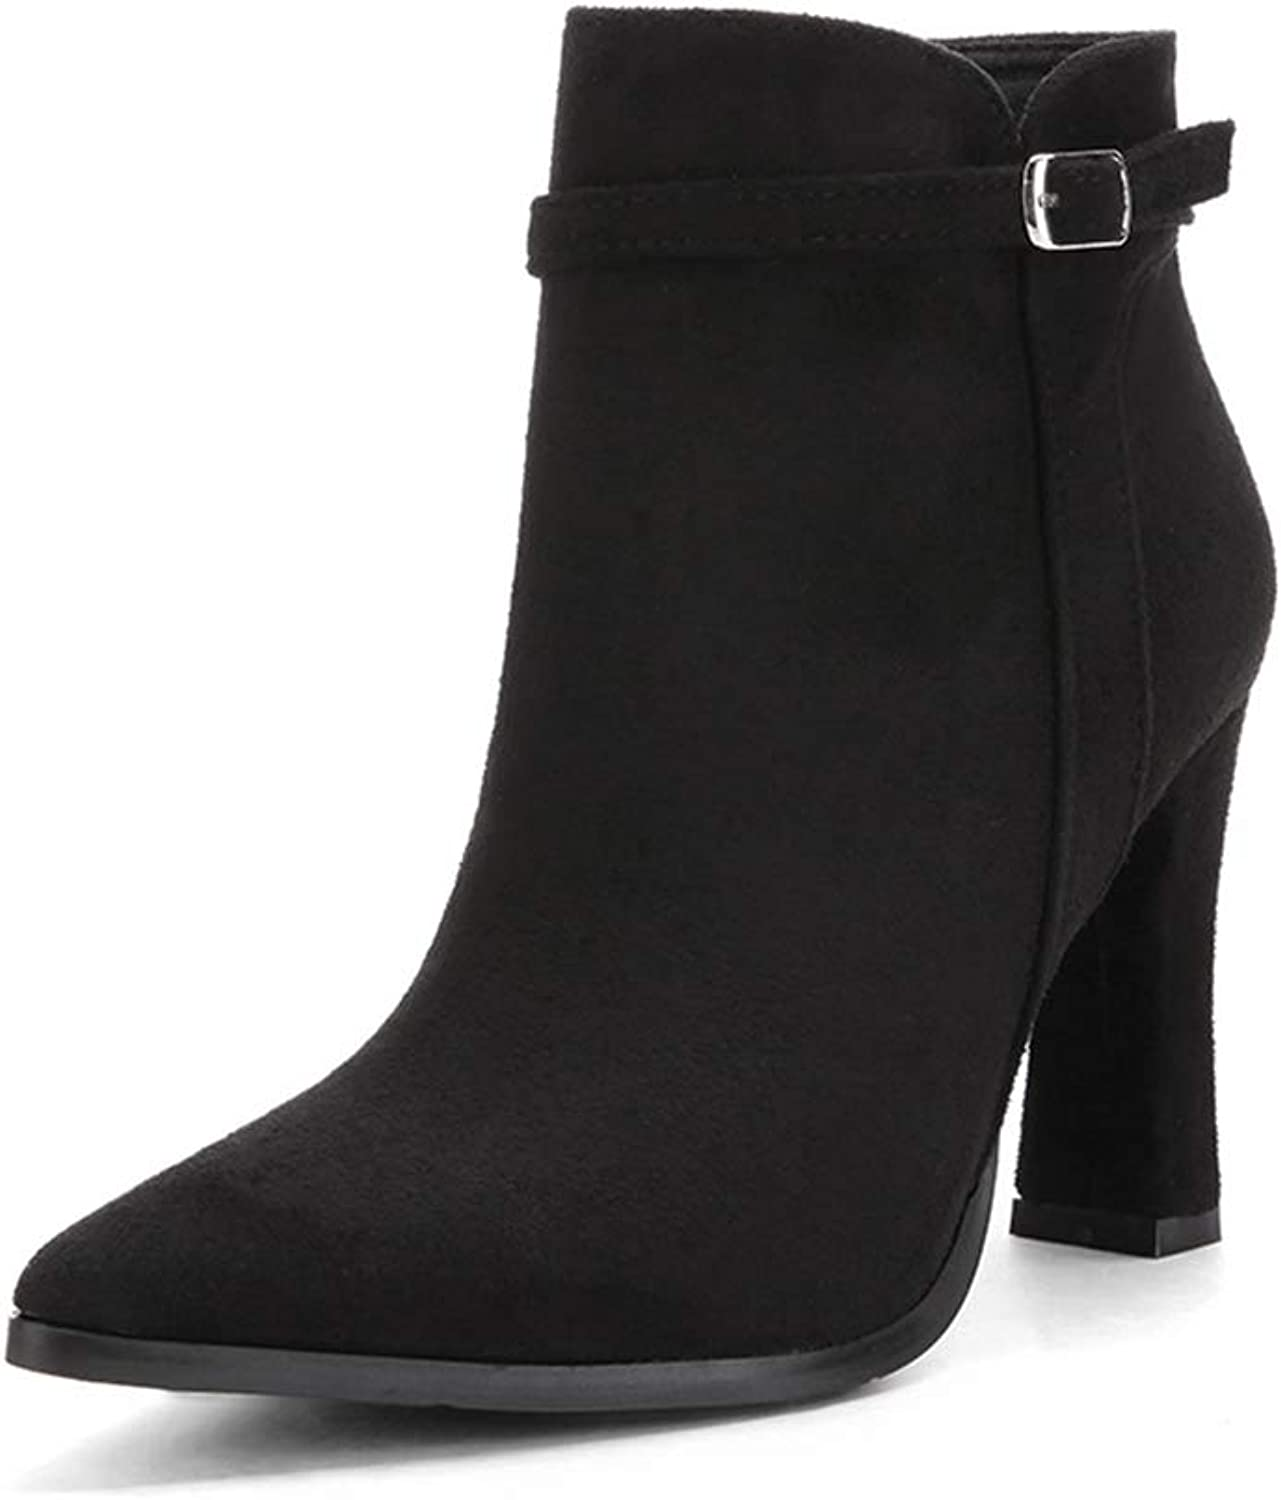 ZX Boots Fashion Wild Female Booties Pointed Thick with high Heel Side Zipper Belt Buckle